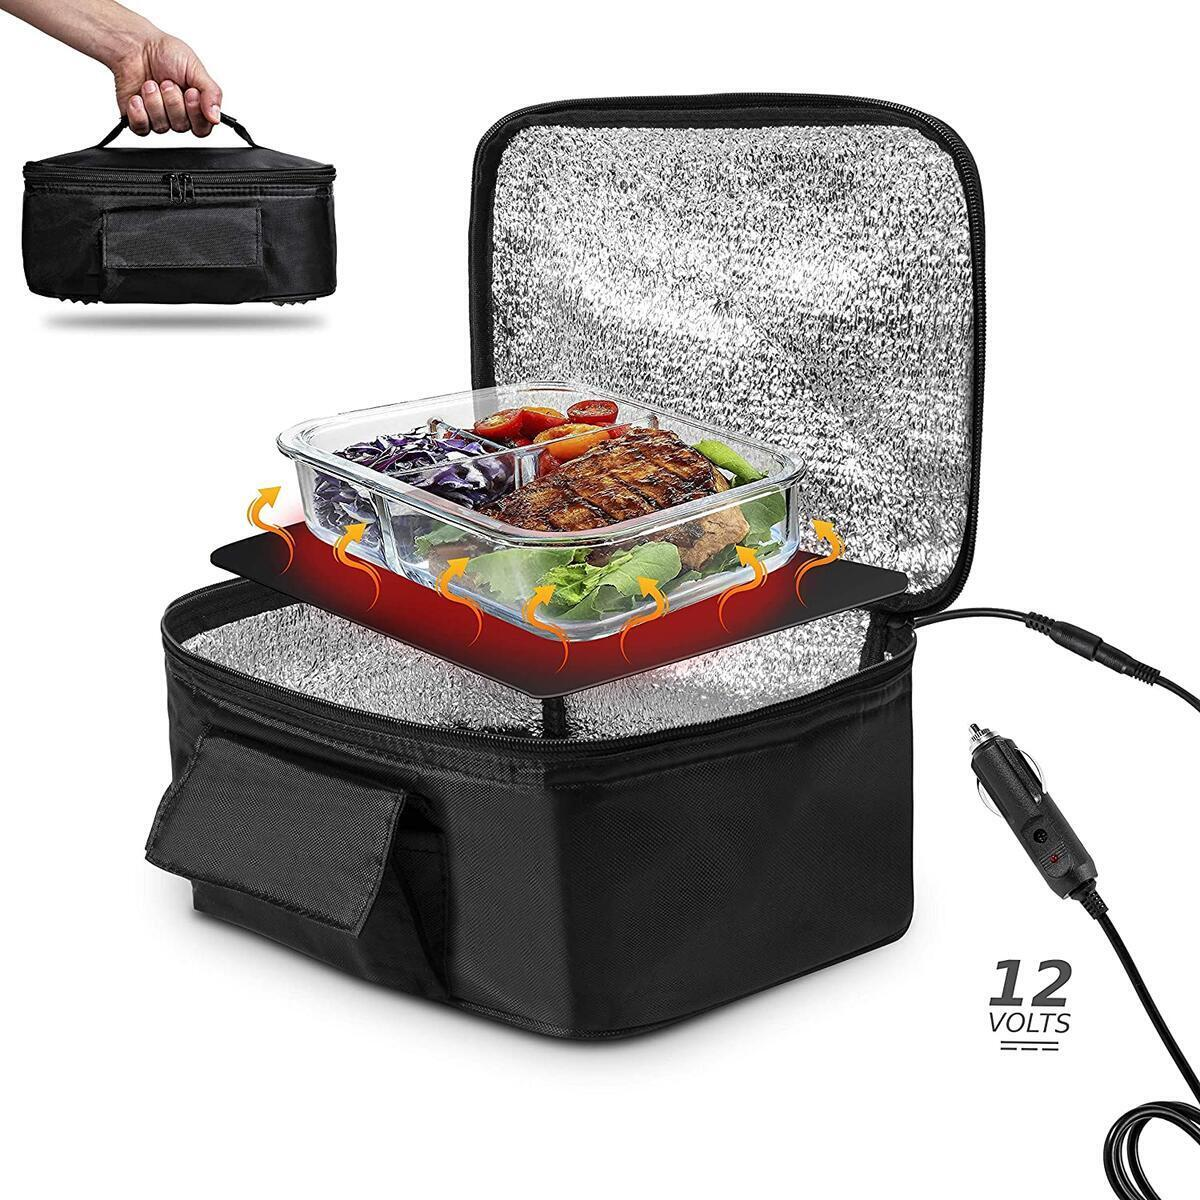 Zento Deals Electric Food Portable Oven Heating Lunch Box - 12V Warmer Lightweight Car Food Warmer, Personal Reheating & Raw Food Cooking Perfect for Office and Travel, Potlucks and Home Kitchen